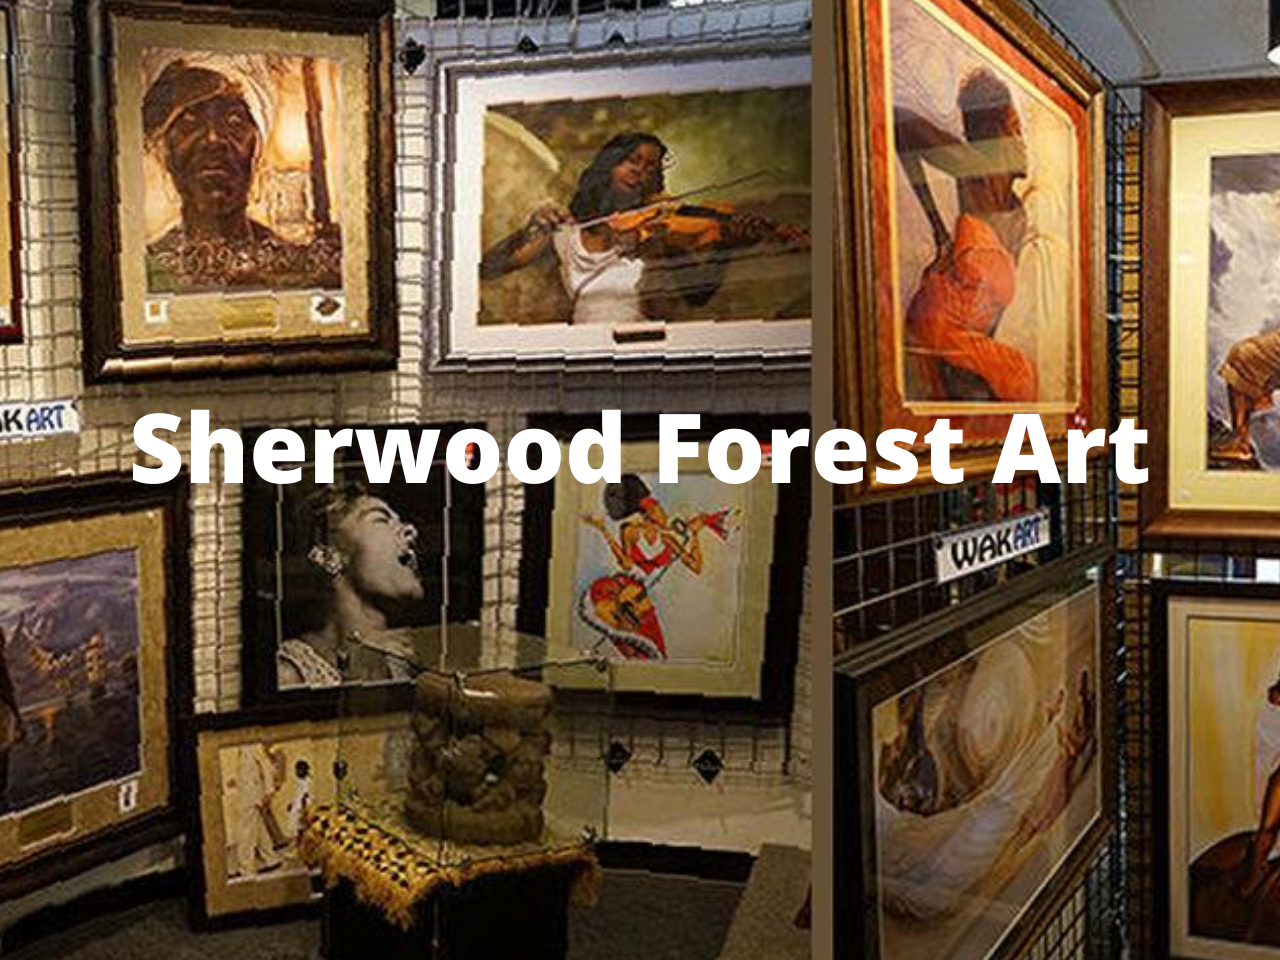 Sherwood Forest Art